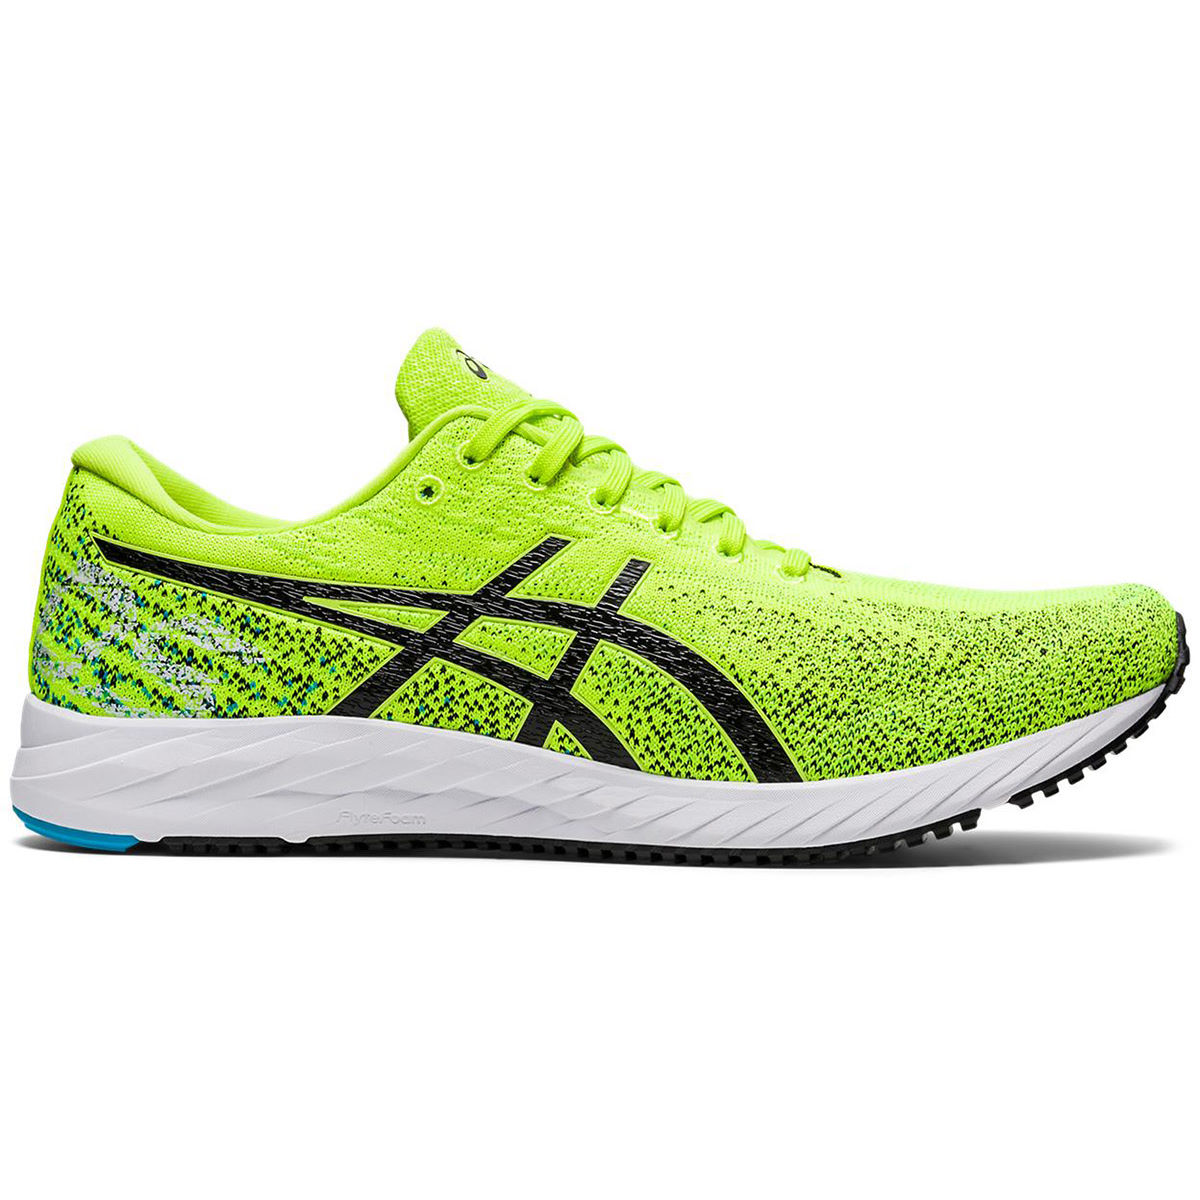 ASICS Asics GEL-DS TRAINER 26 Running Shoes   Running Shoes